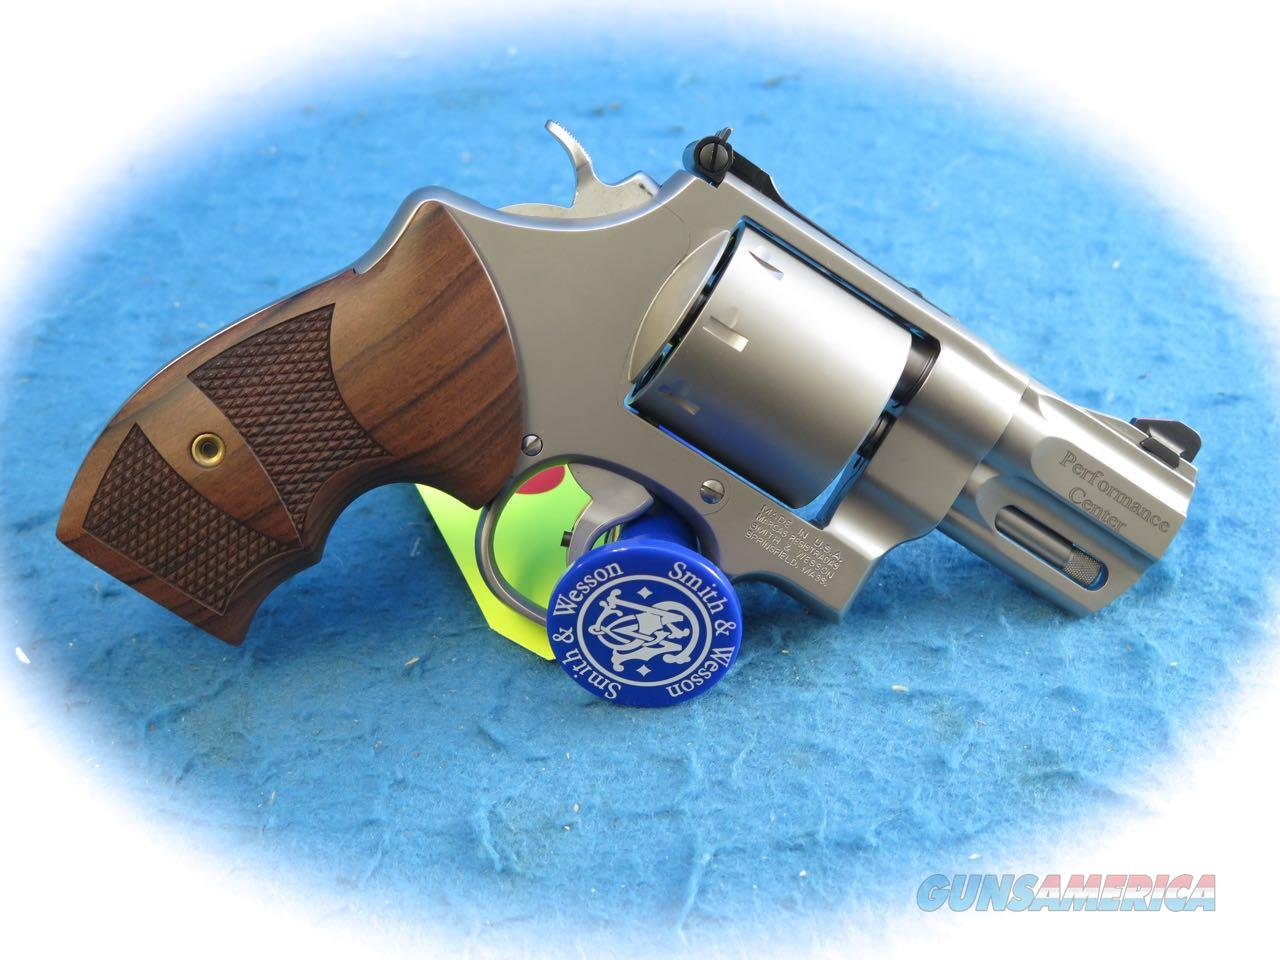 Smith & Wesson Model 627 Performance Center .357 Magnum 8 Shot Revolver  SKU 170133 **New**  Guns > Pistols > Smith & Wesson Revolvers > Performance Center